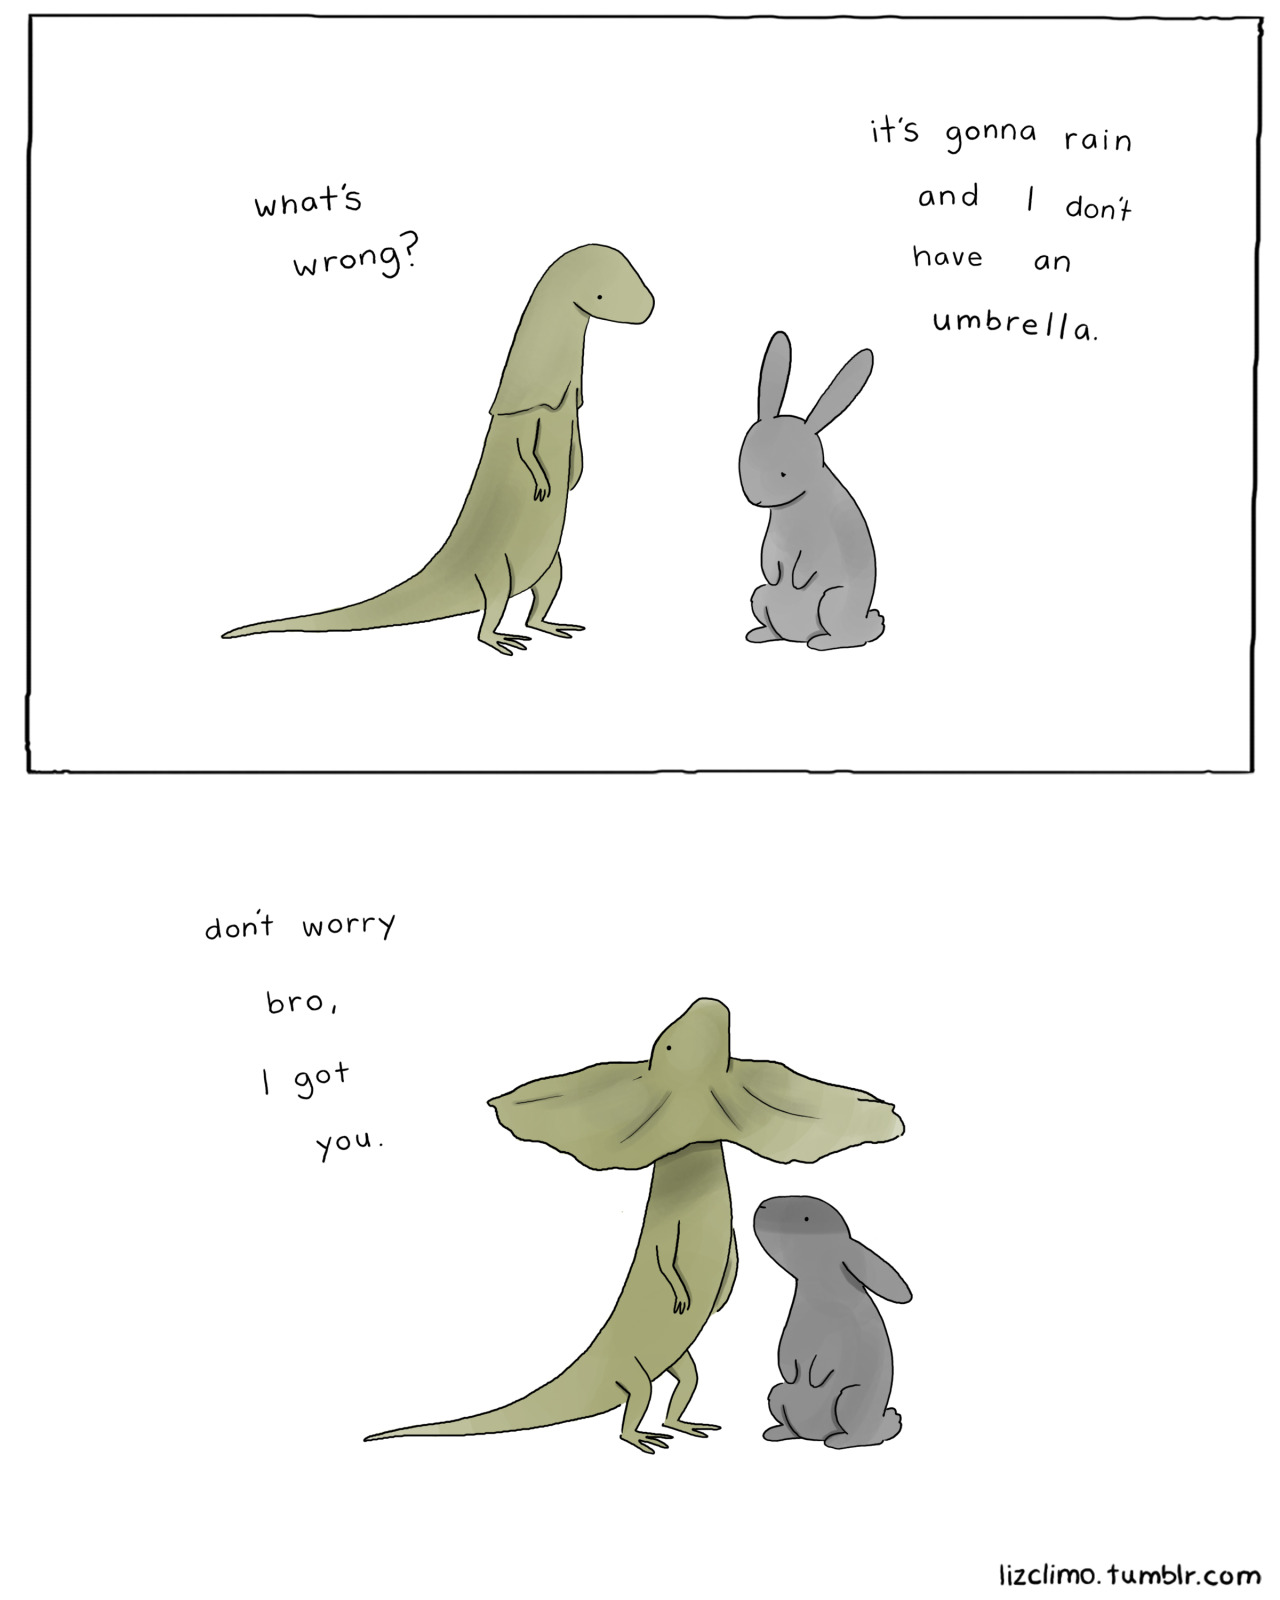 lizclimo:  what a nice guy.